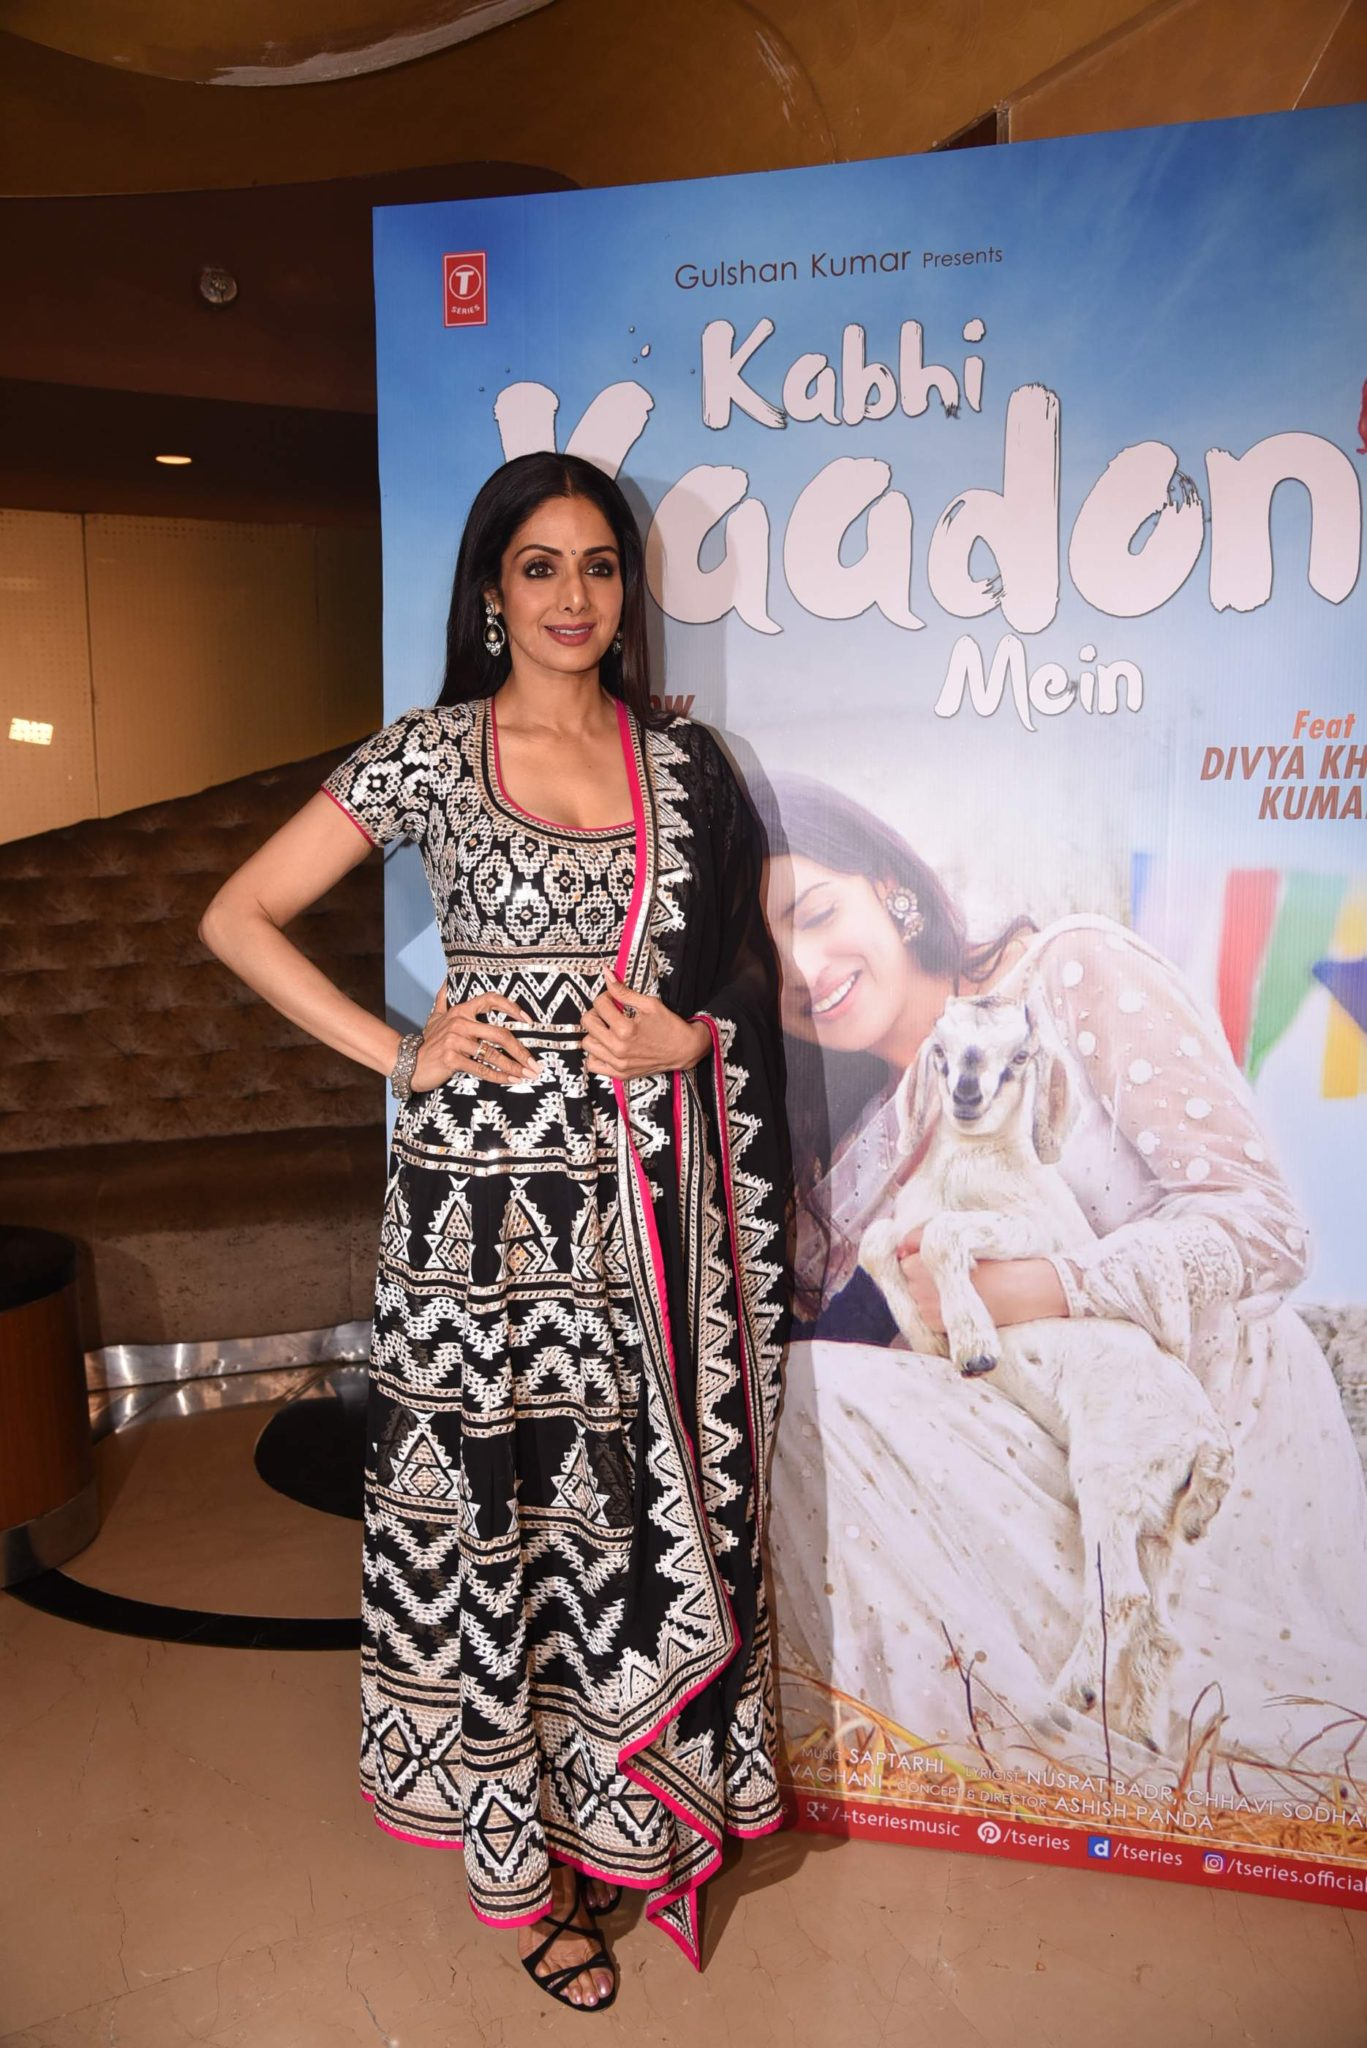 sridevi Photo Stills Of Beautiful Sridevi From 'Kabhi Yaadon Mein' Event Sridevi TSeries 57